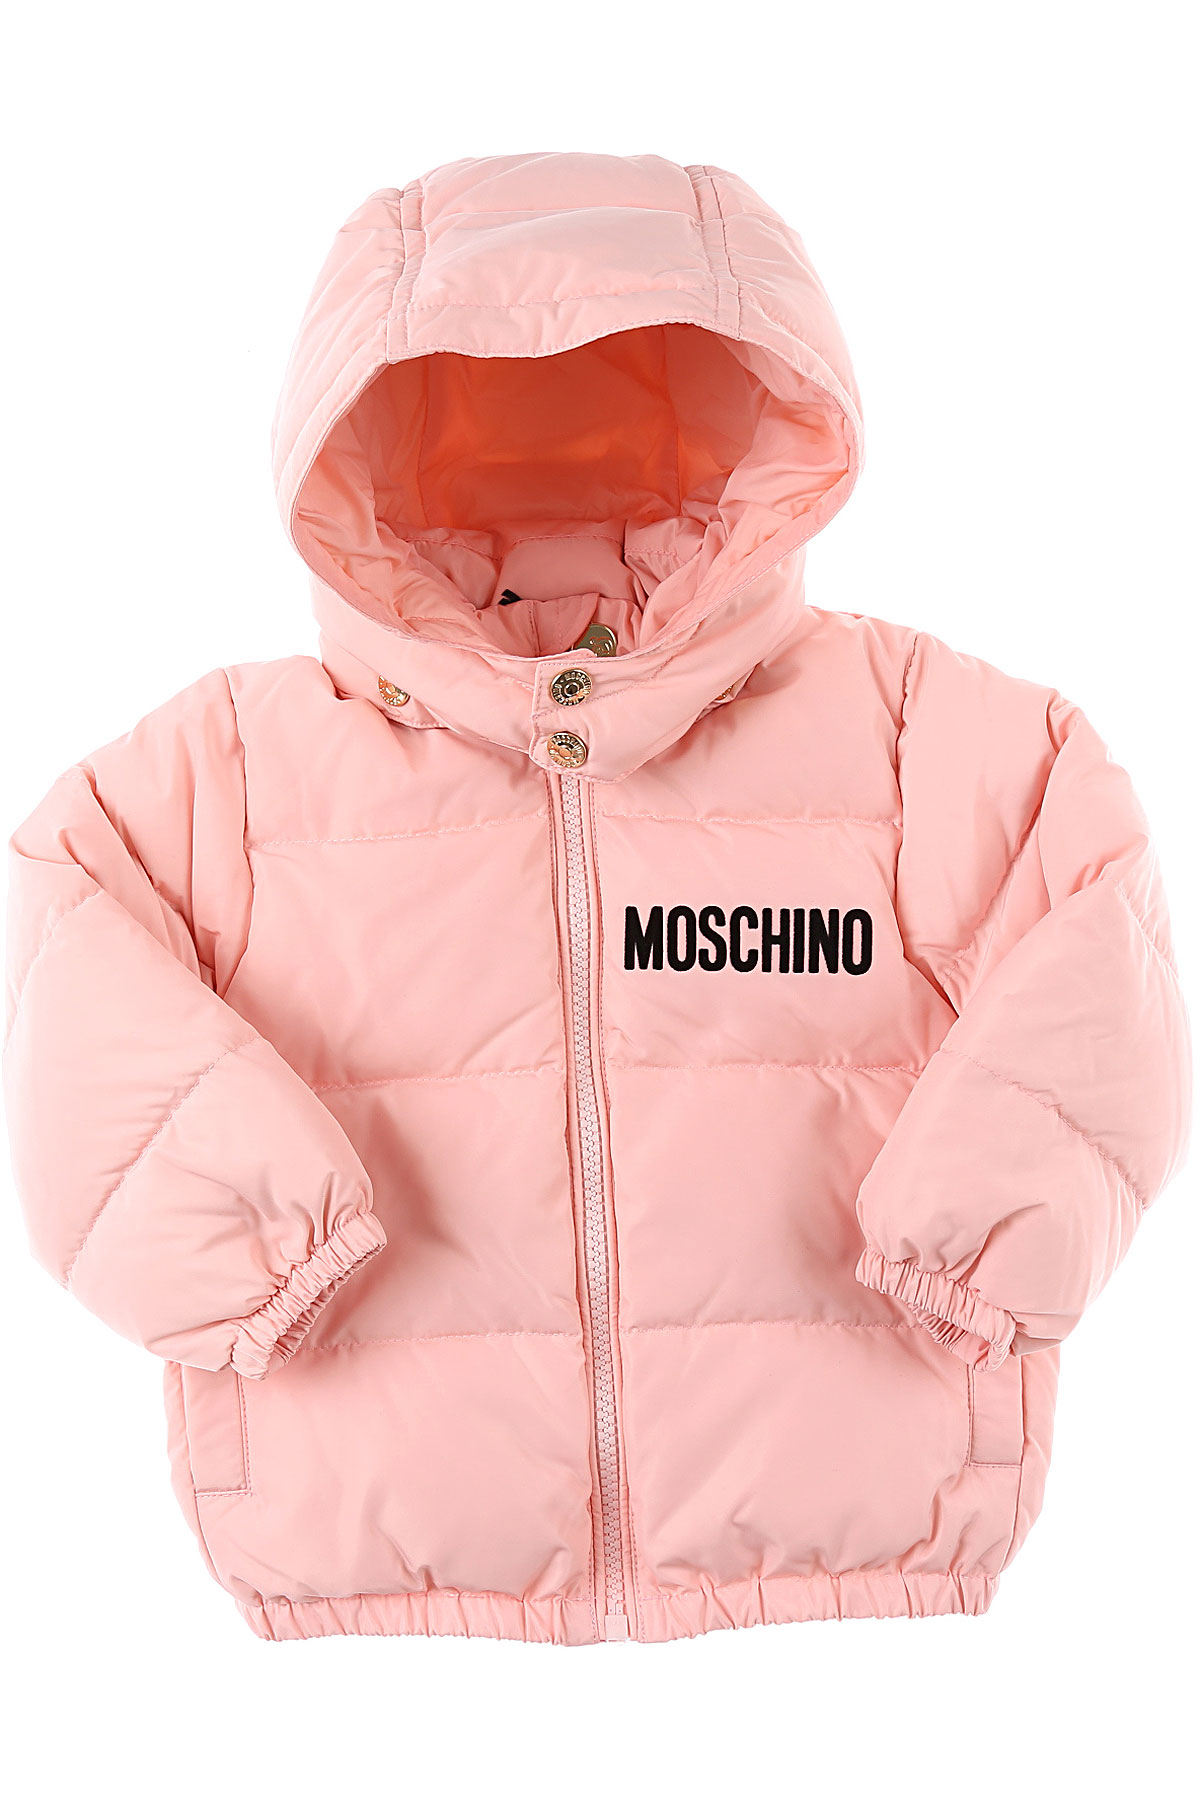 Moschino Baby Down Jacket for Girls On Sale, Pink, polyester, 2019, 18M 2Y 3Y